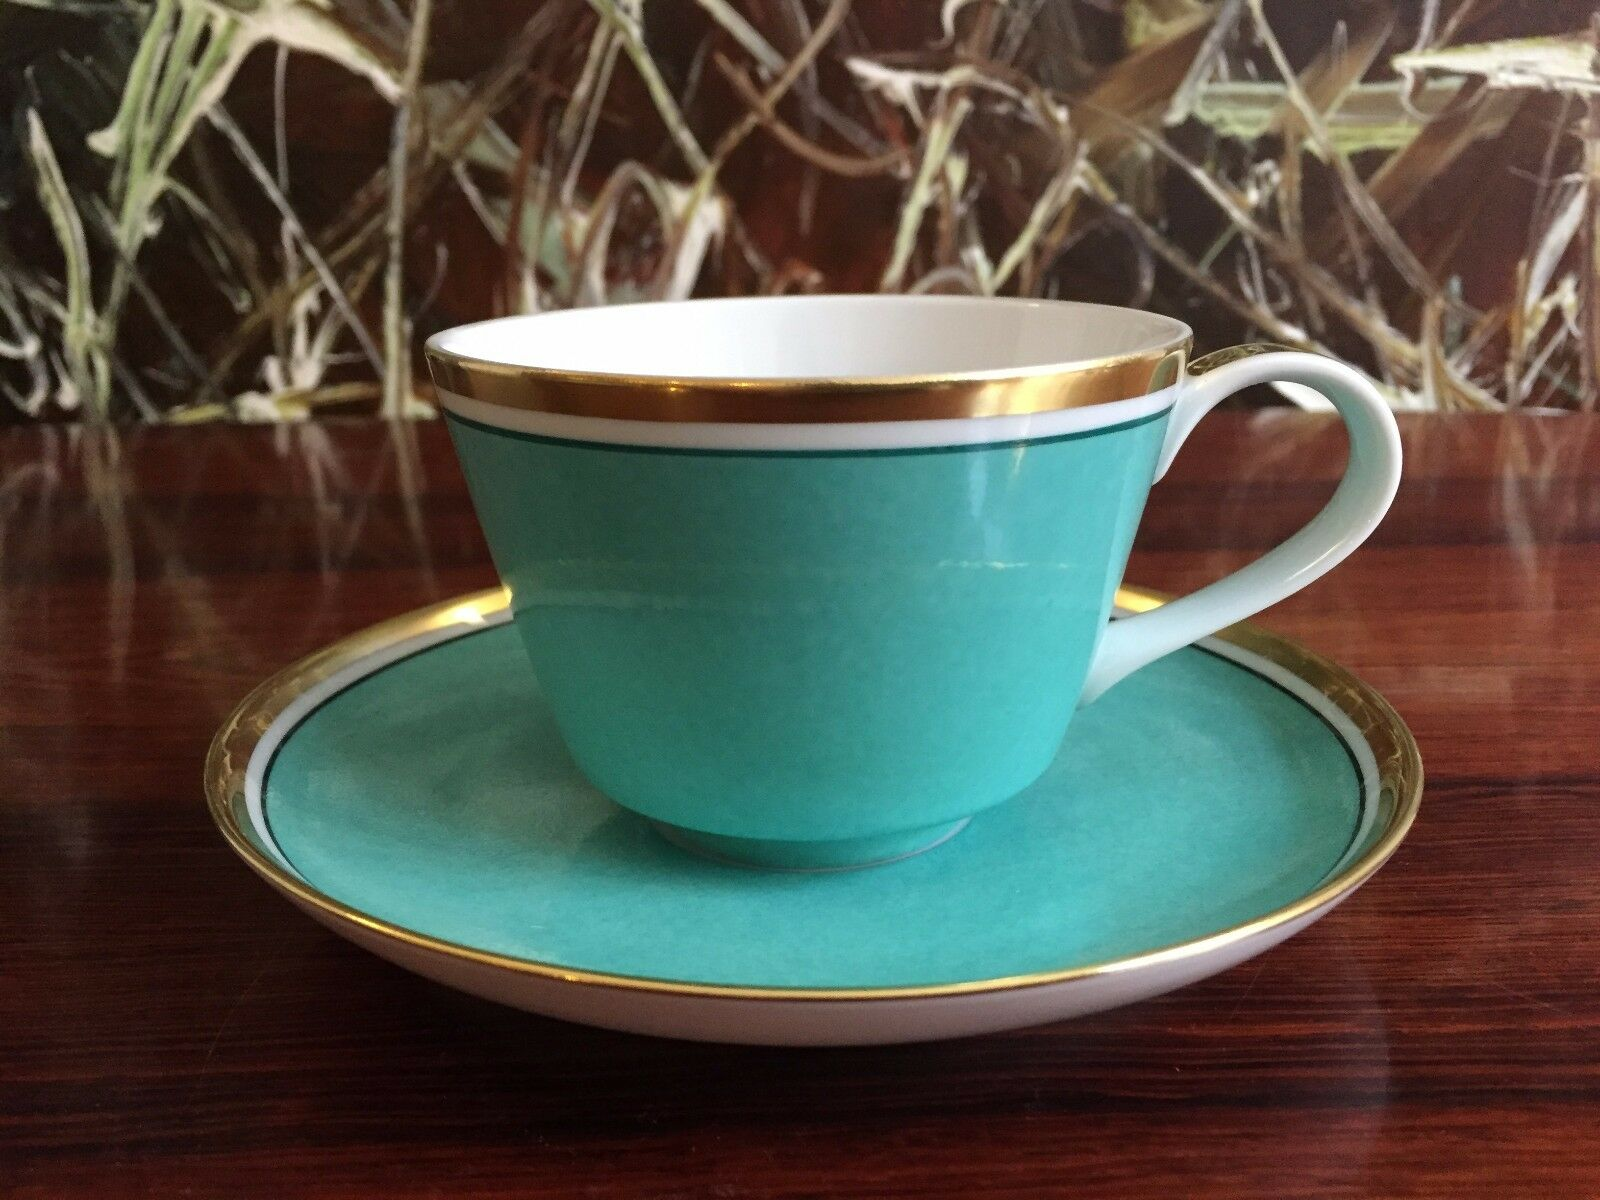 Reichenbach Colour Collection Coffee Cup With Saucer Turquoise 0 22 Keepcup Brew Milk Medium 340ml 12oz Rescontentglobalinflowinflowcomponenttechnicalissues